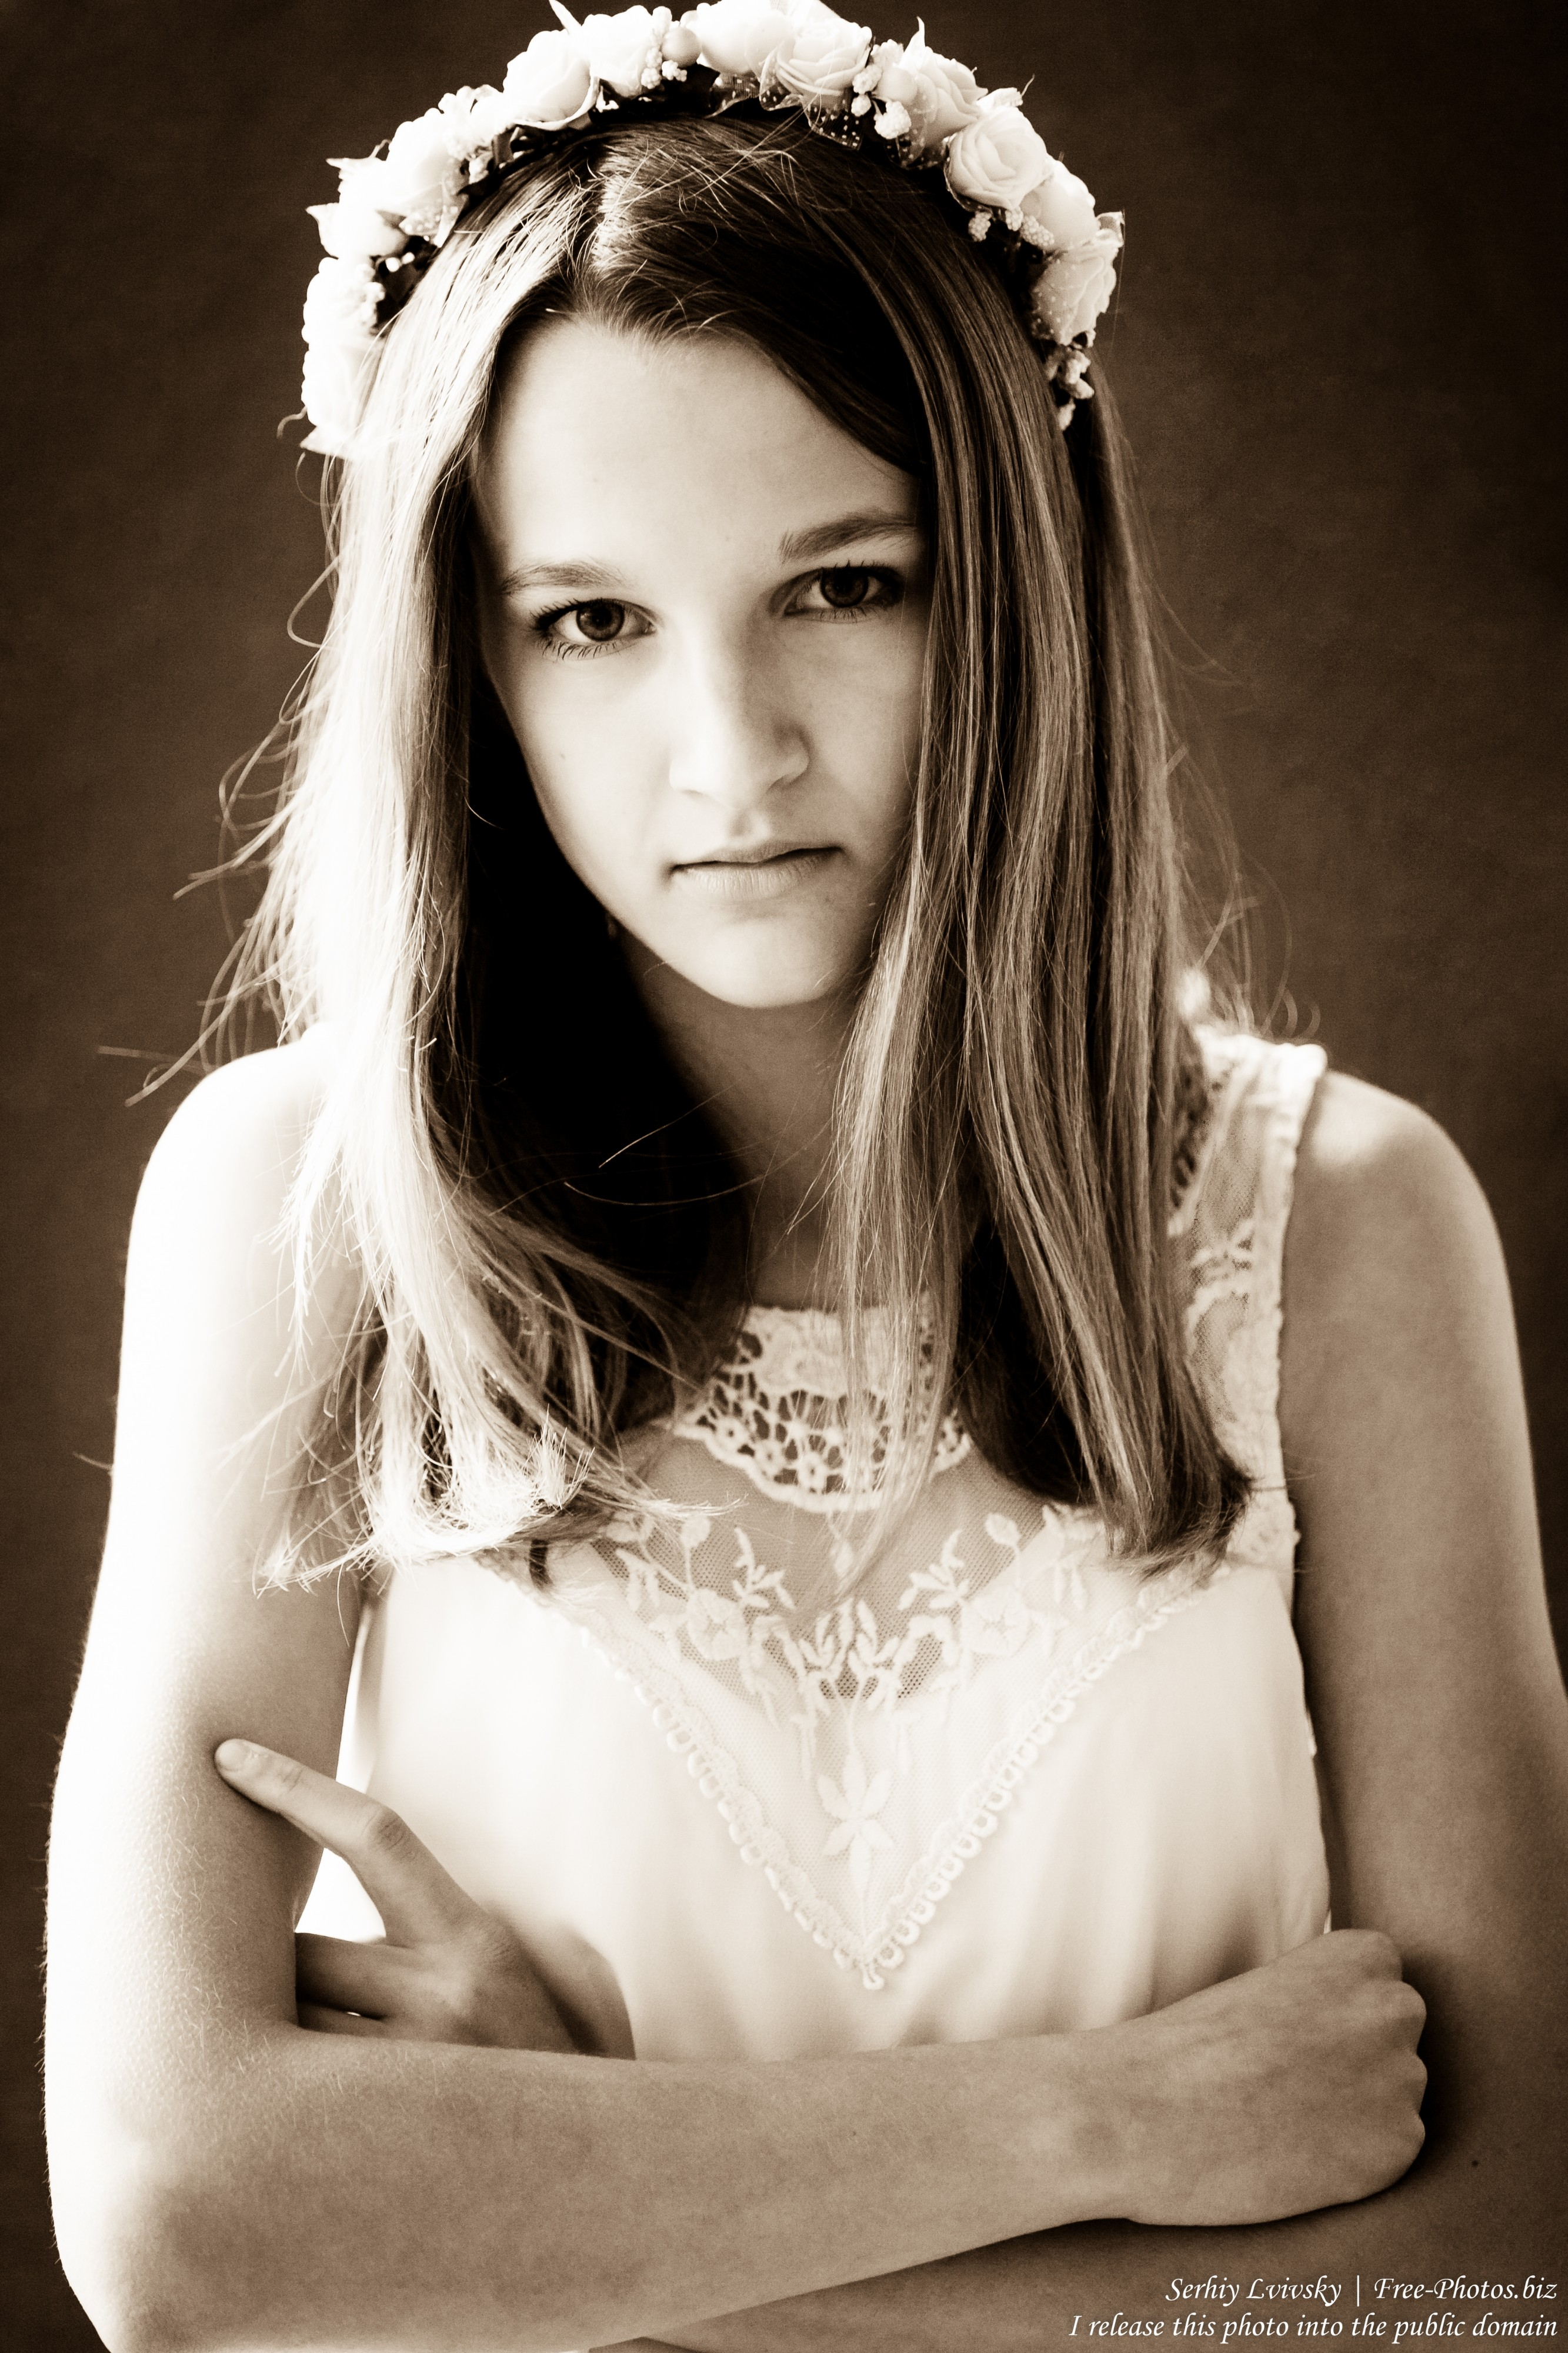 a 13-year-old Catholic girl in a white dress photographed in June 2015, picture 6